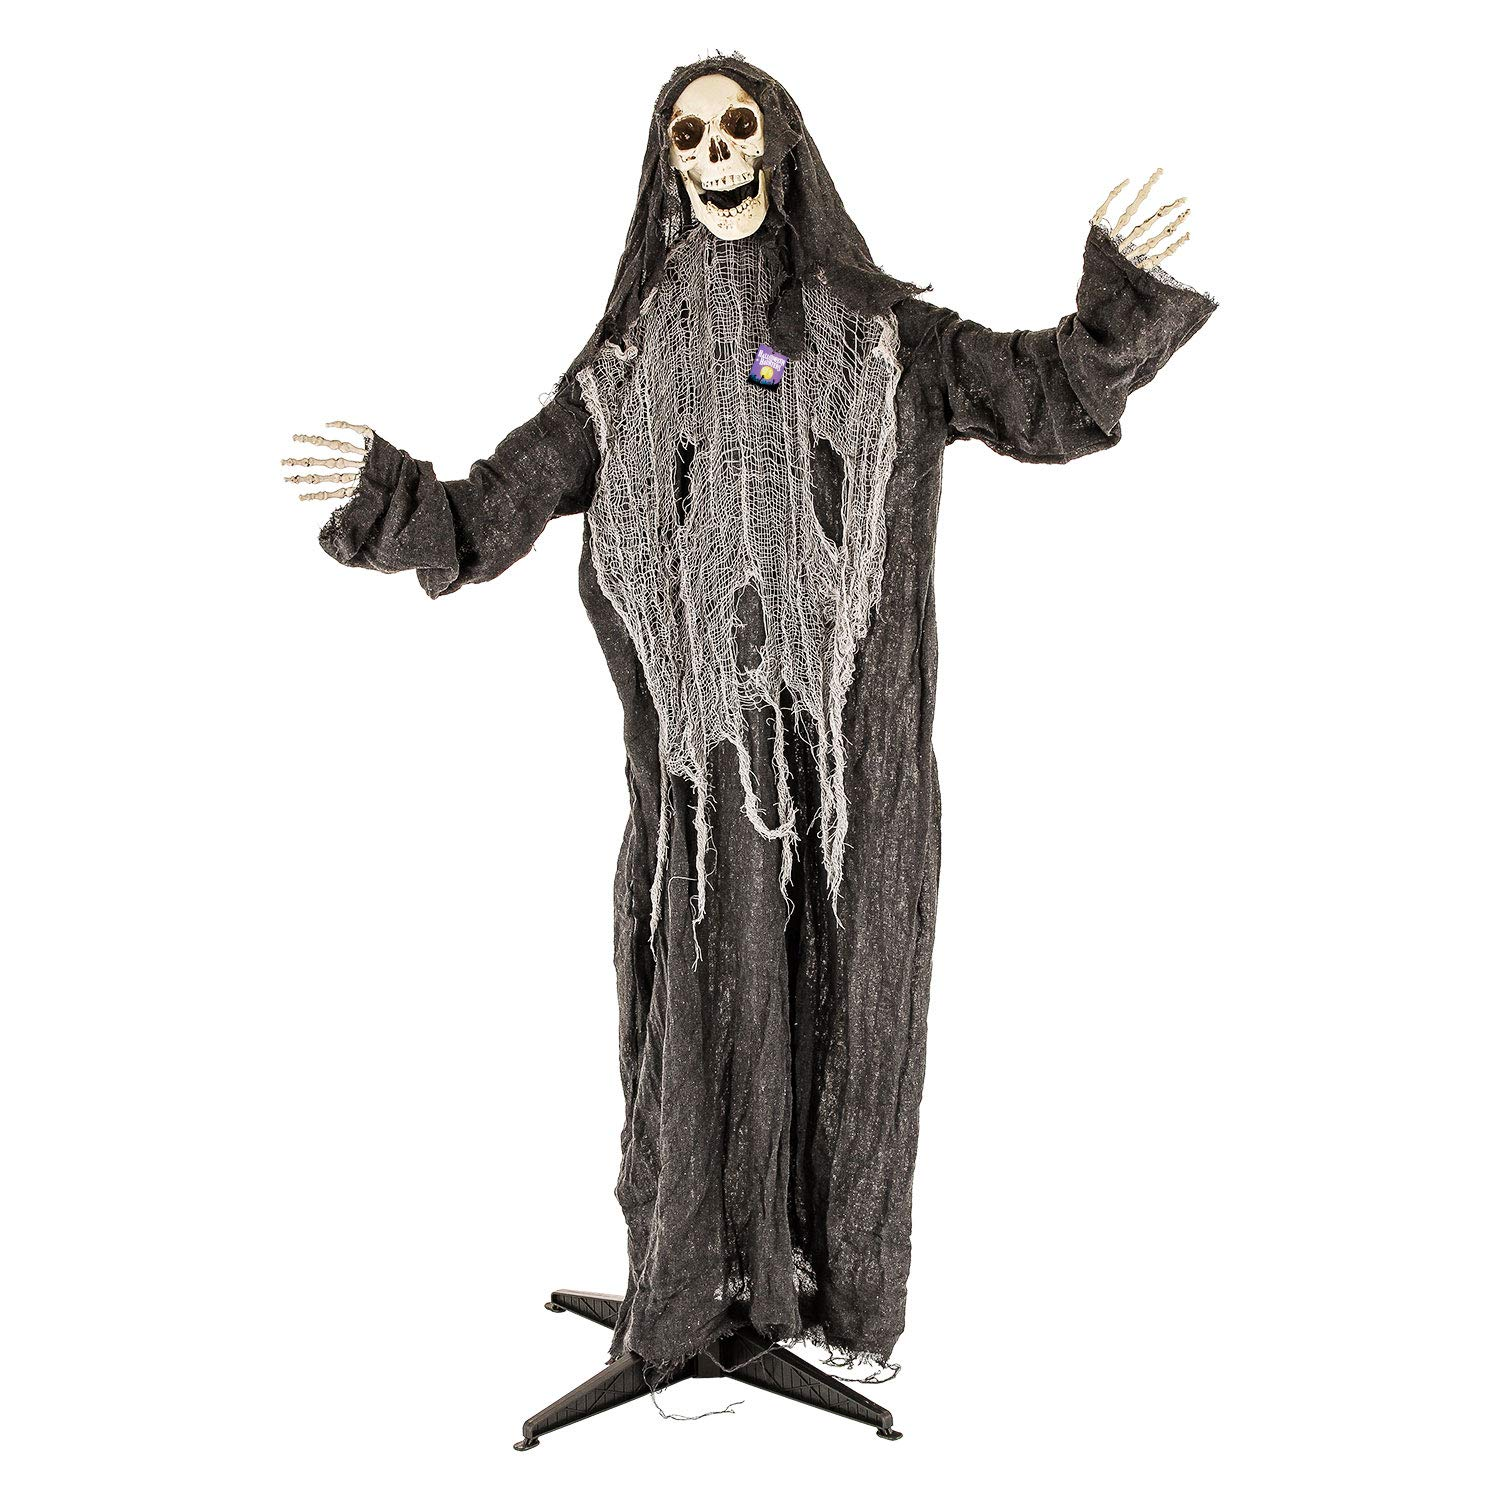 Halloween Haunters Animated Standing Life Size Skeleton Reaper Evil Red Eyes Light up Prop Decoration - Death Screams - Battery Operated